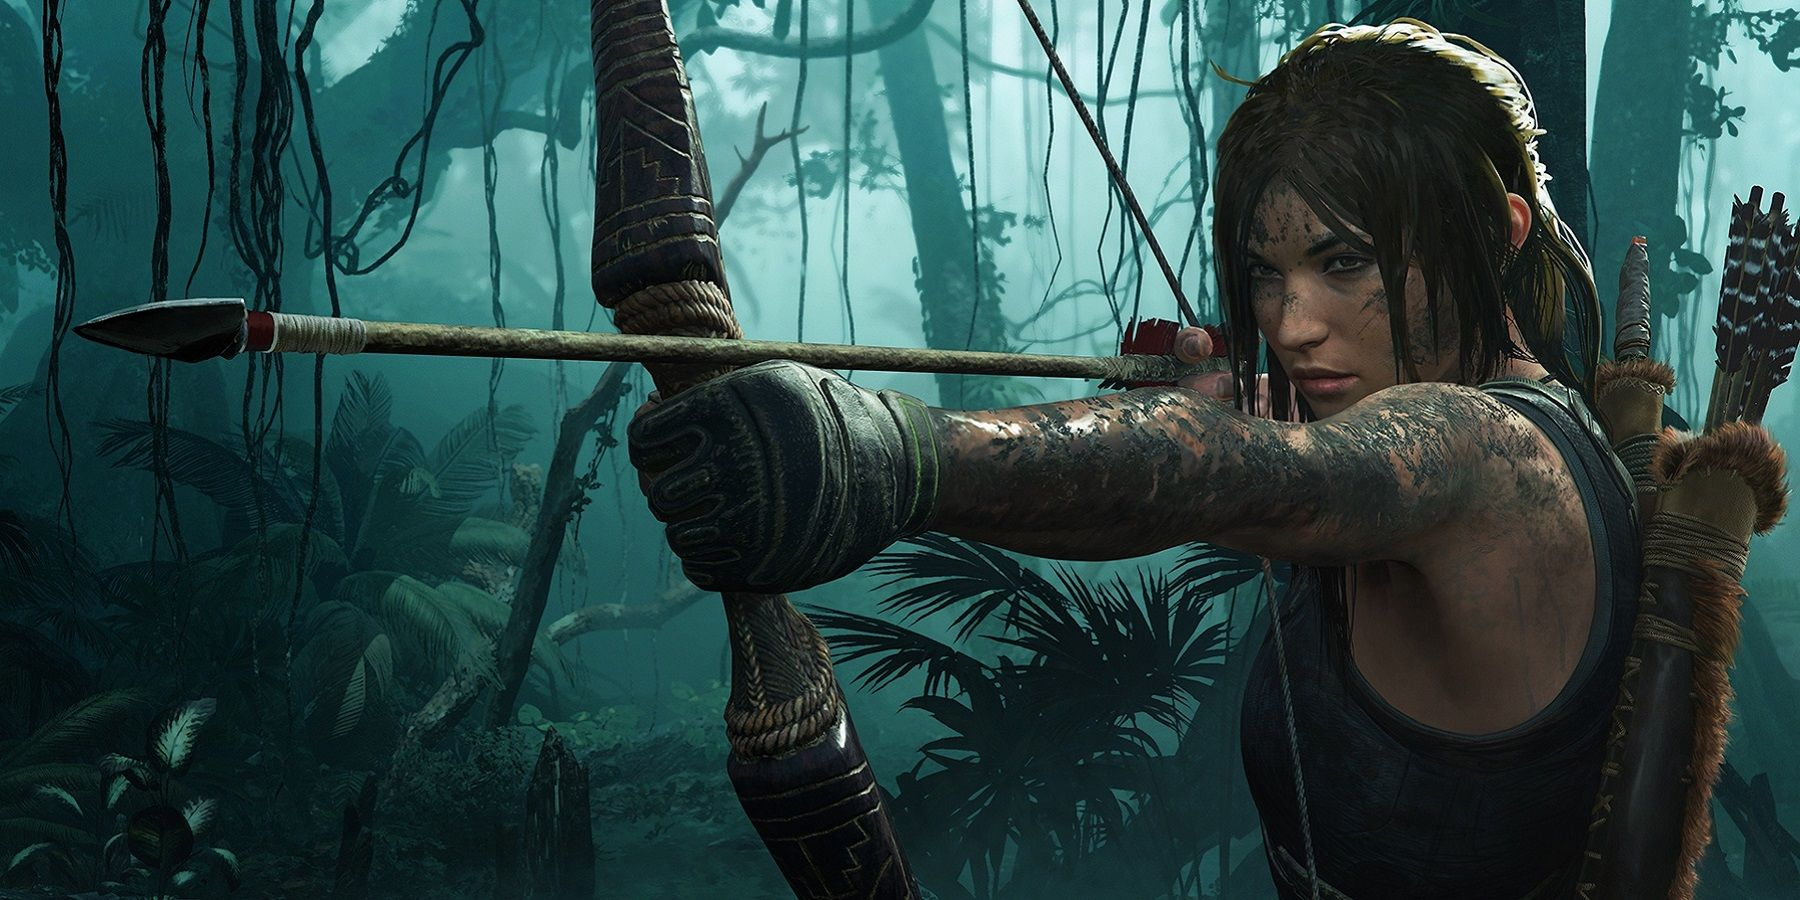 Anti-Tamper Software Removed from Tomb Raider Games, Adds Latest DLSS